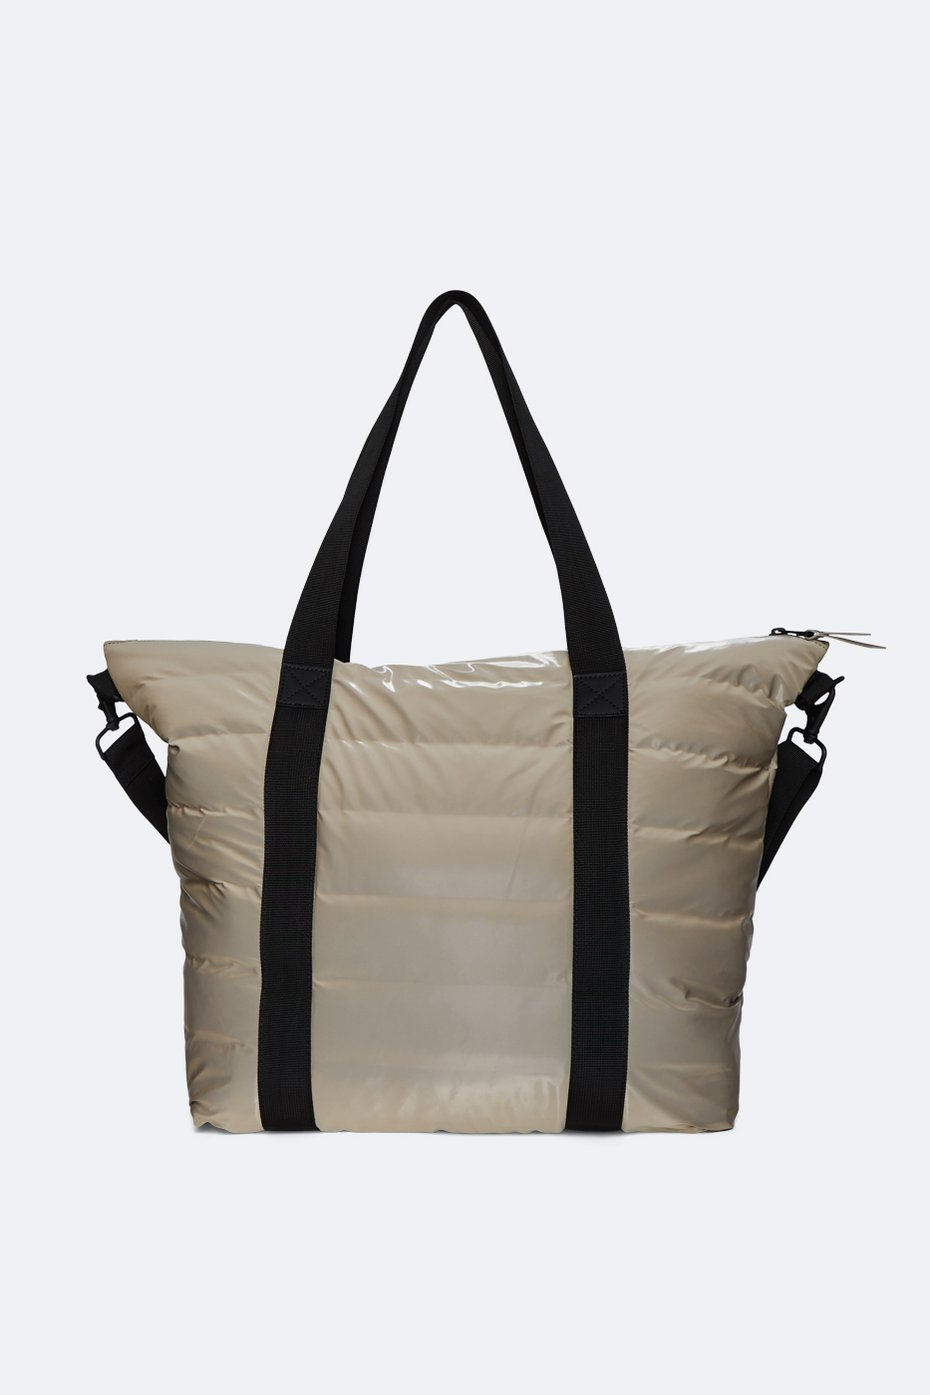 TOTE BAG QUILTED BLACK/TAUPE - RAINS(3538)